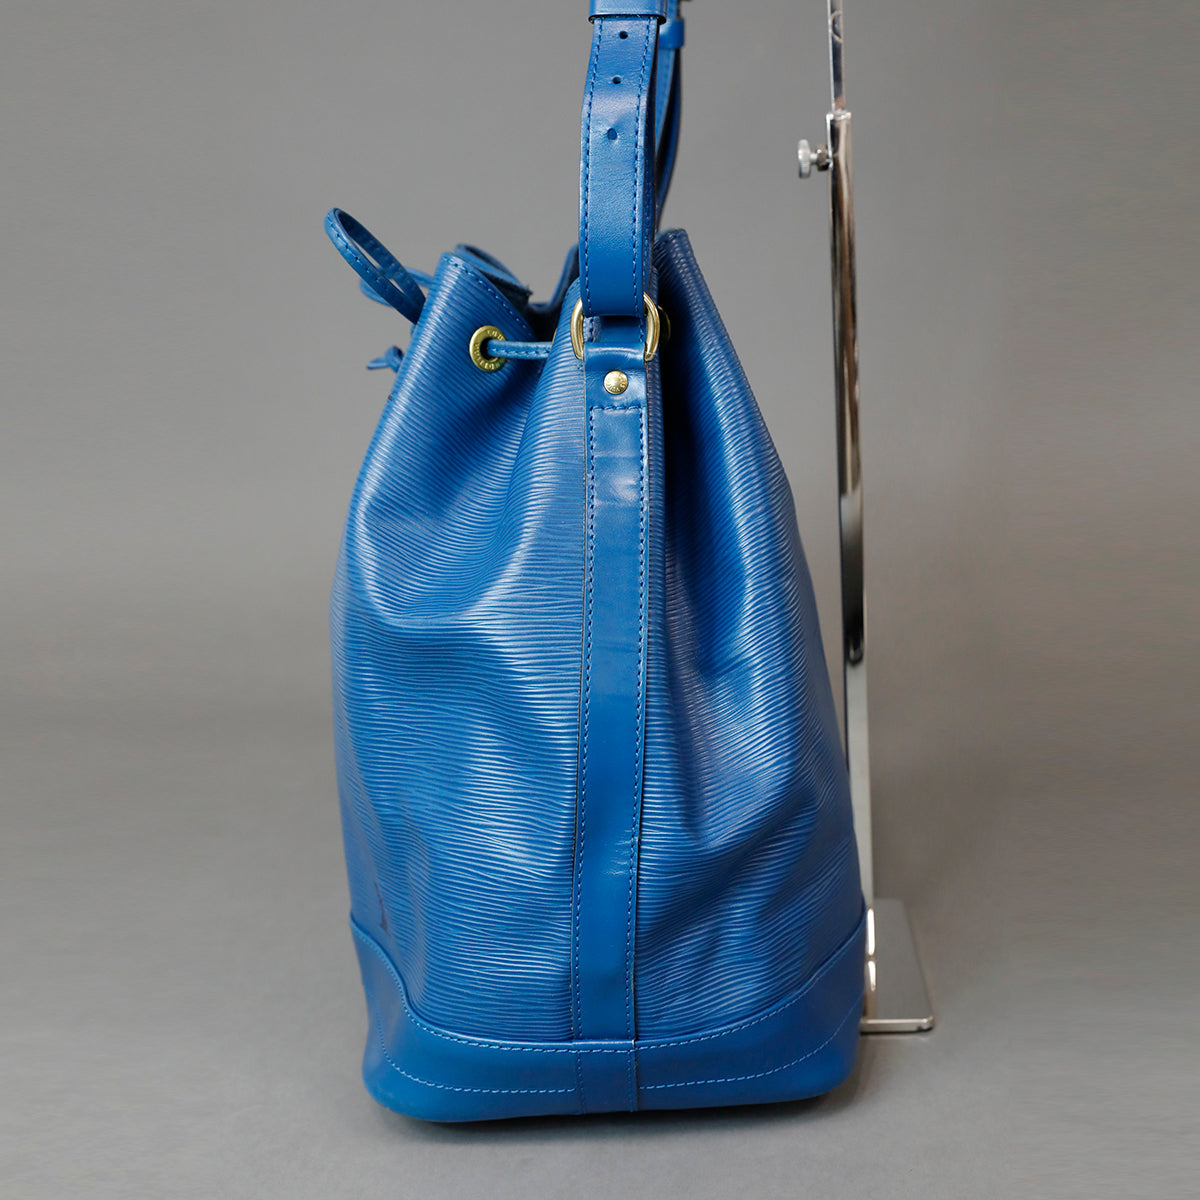 LOUIS VUITTON Epi Noé Bag Blue